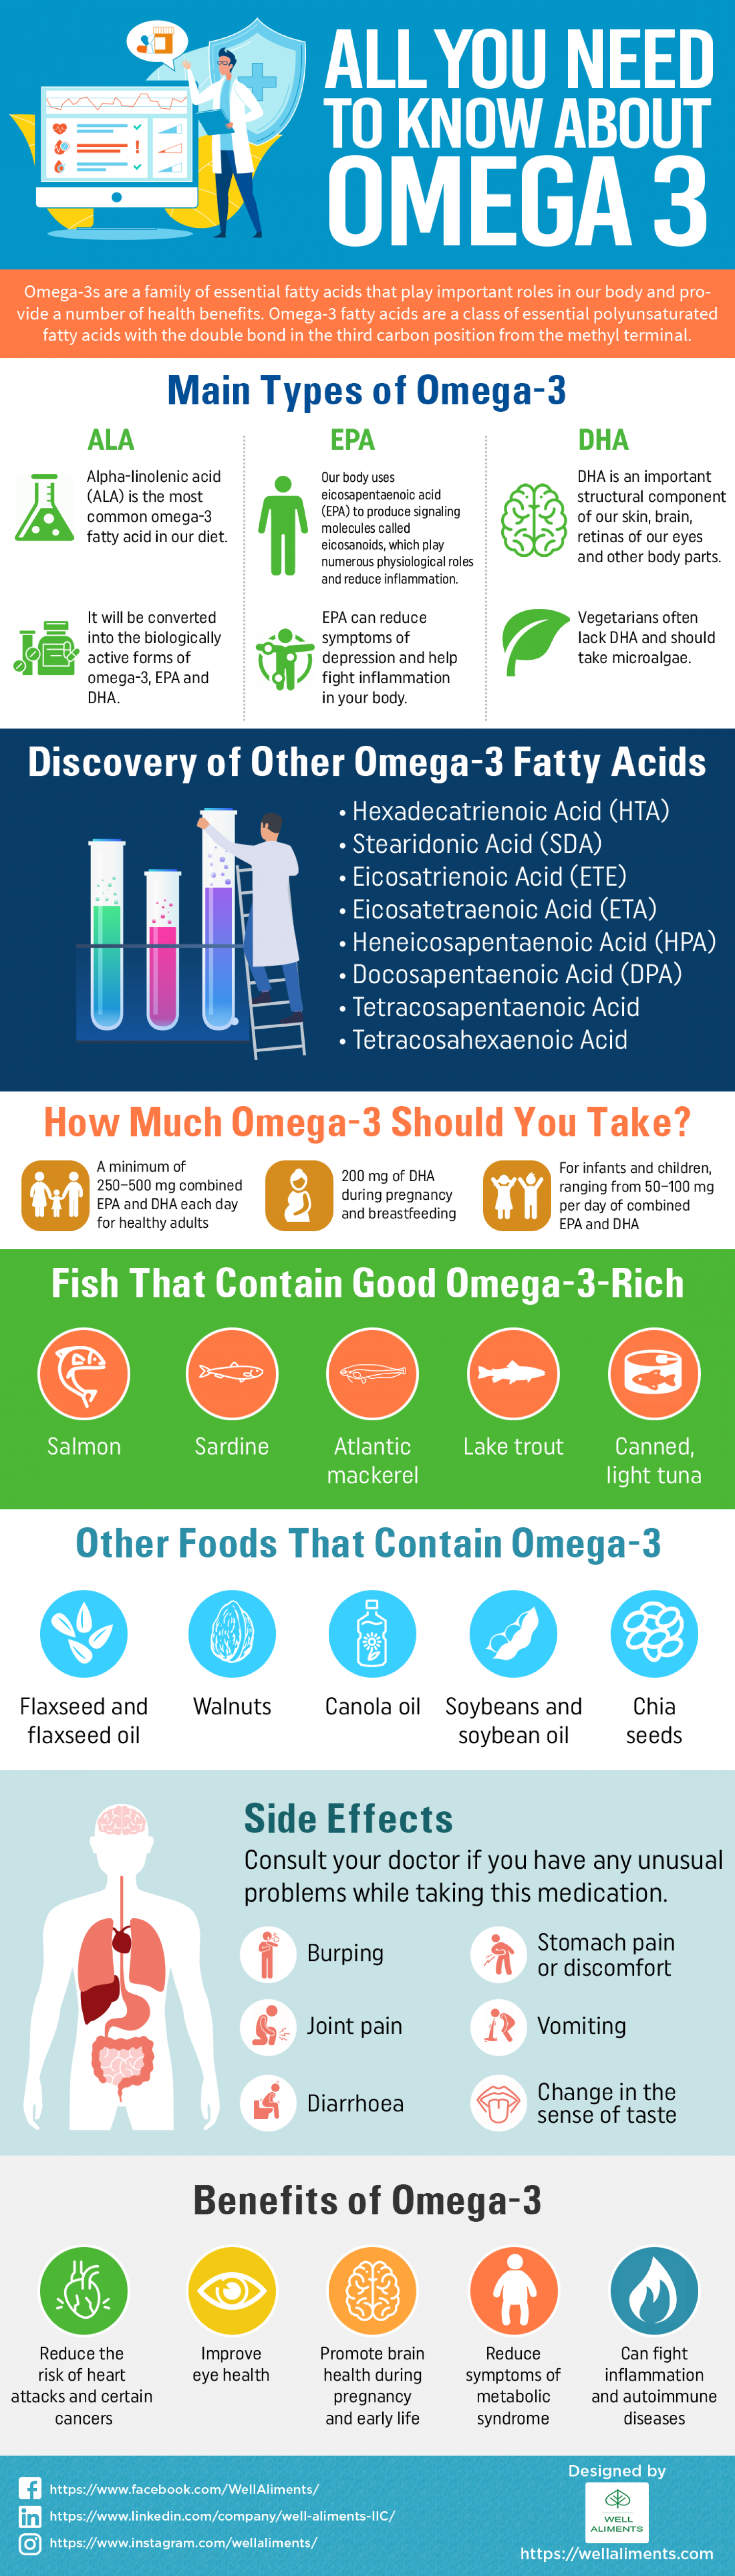 All you need to know about OMEGA 3 Infographic